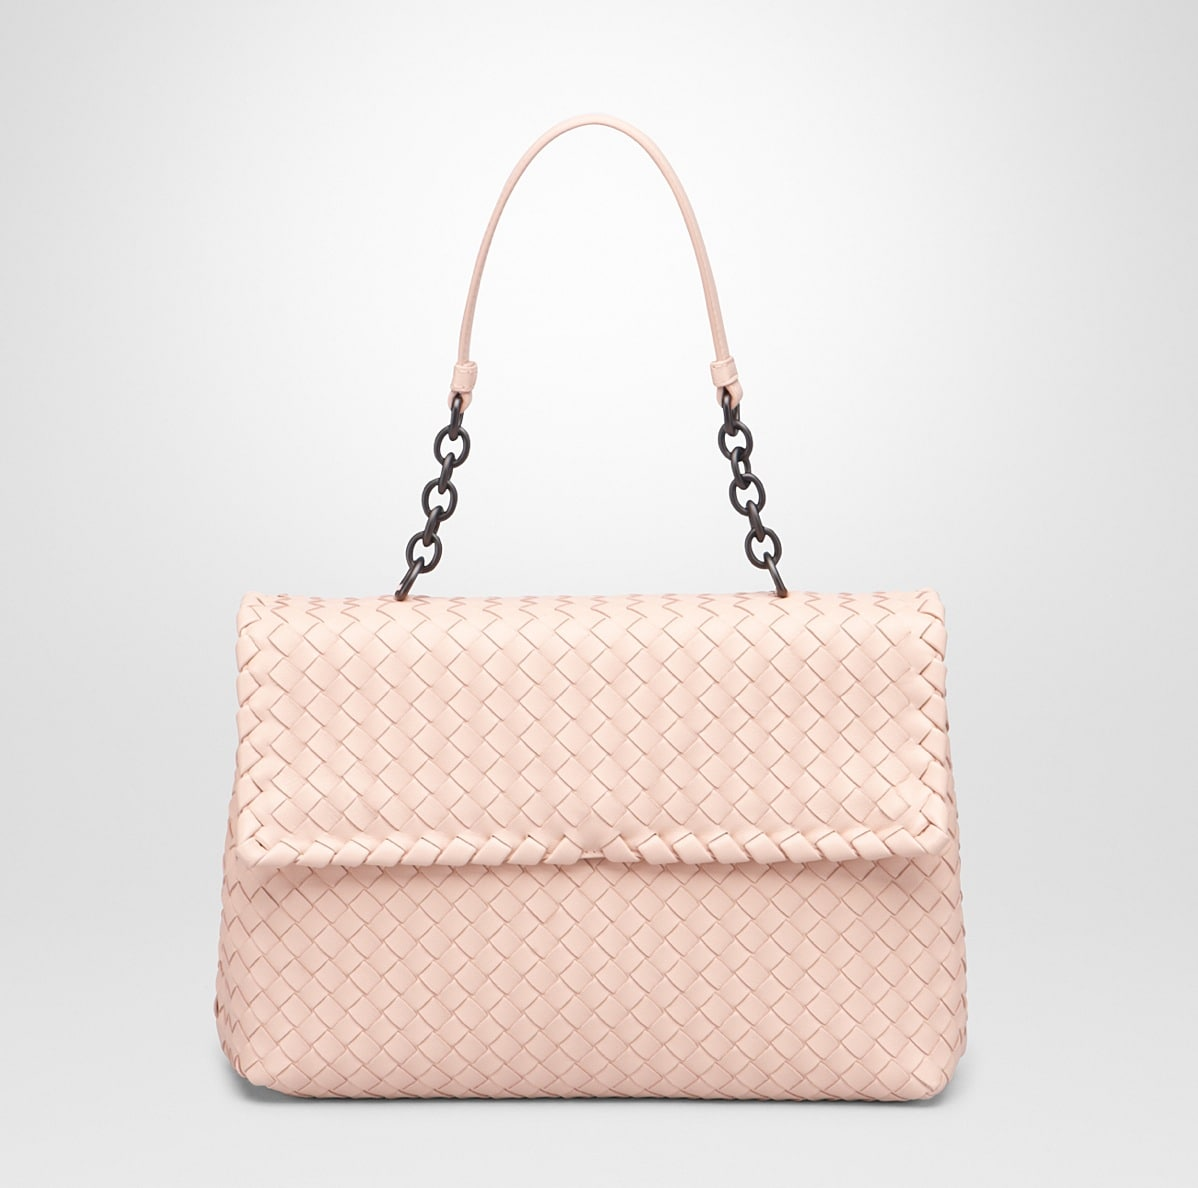 648fca15c9 Bottega Veneta Flamingo Intrecciato Nappa Olimpia Large Bag - Cruise 2015